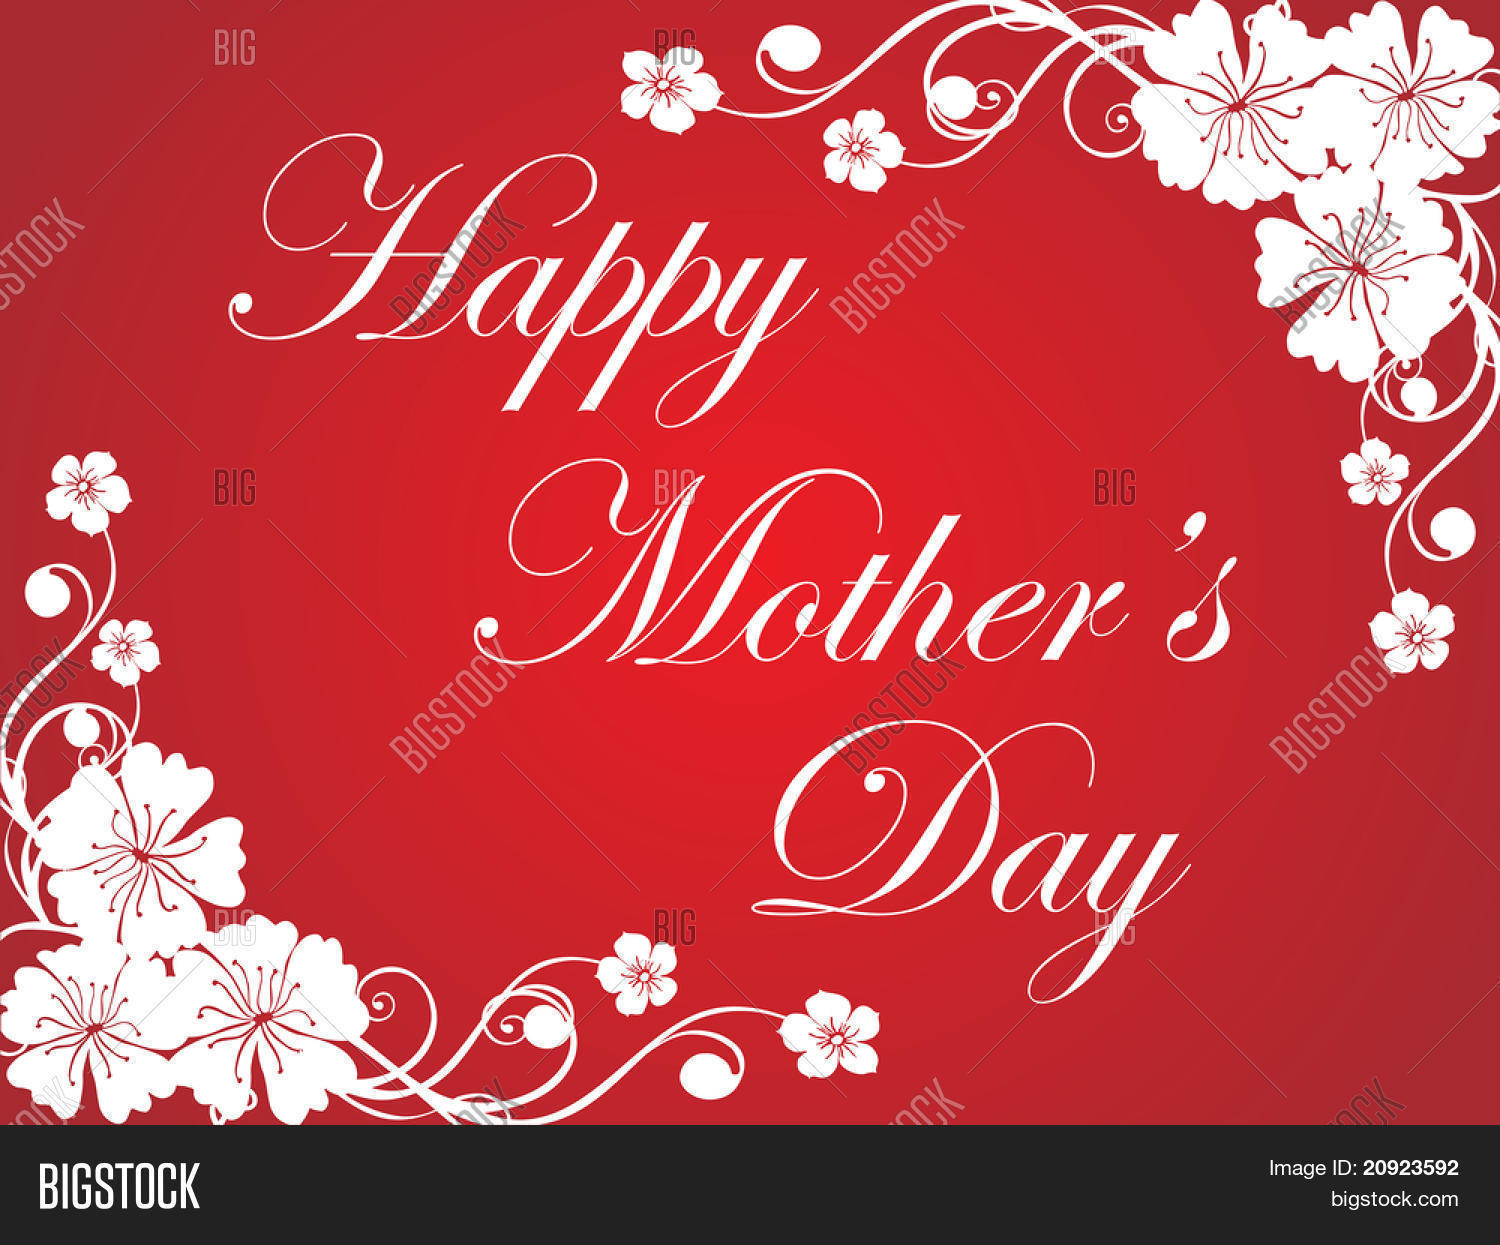 Red flower design vector photo free trial bigstock red flower design mother day greeting card m4hsunfo